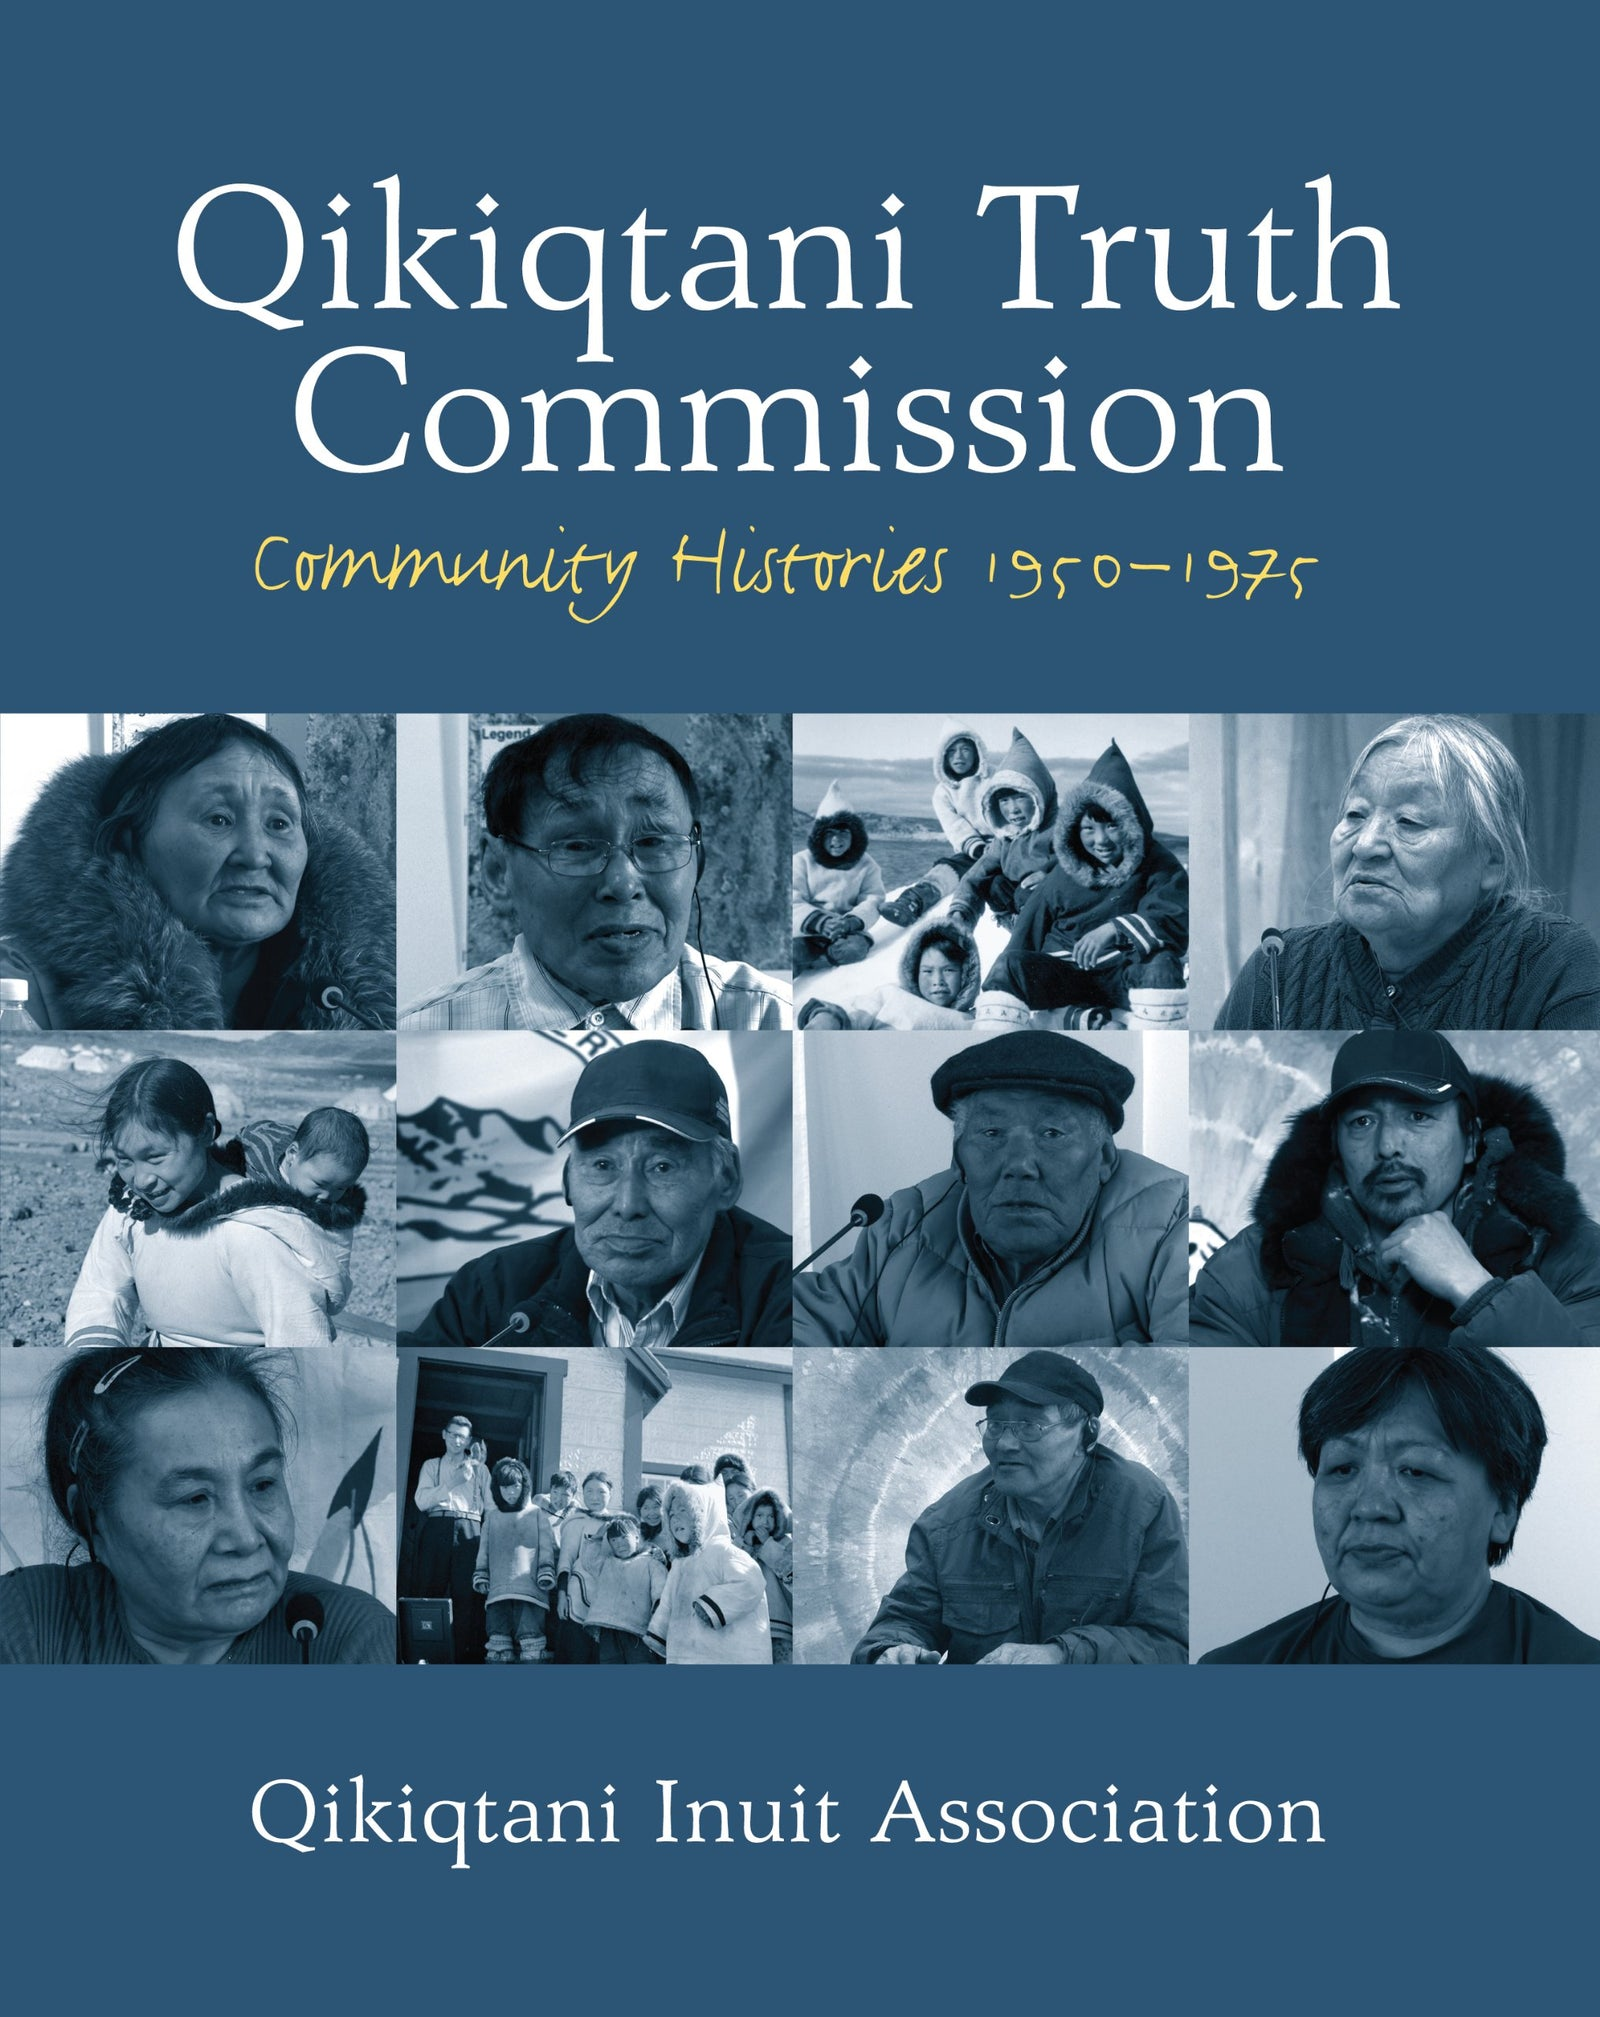 Qikiqtani Truth Commission Community Histories 1950-1975